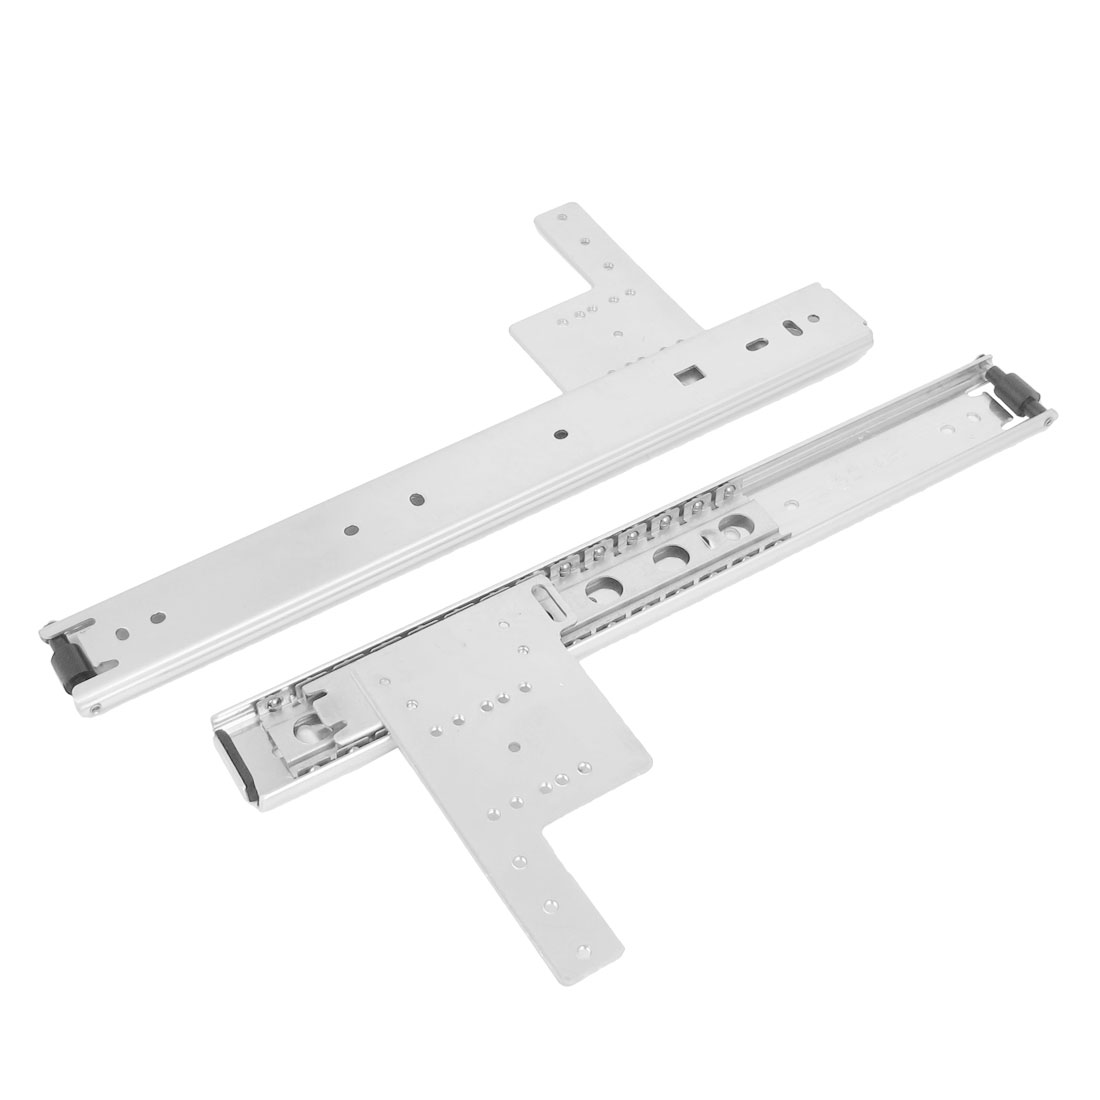 "2 Pcs 12"" Long Metal Adjustable Ball Bearing Drawer Slides Sliding Rail Track Hardware Tool"